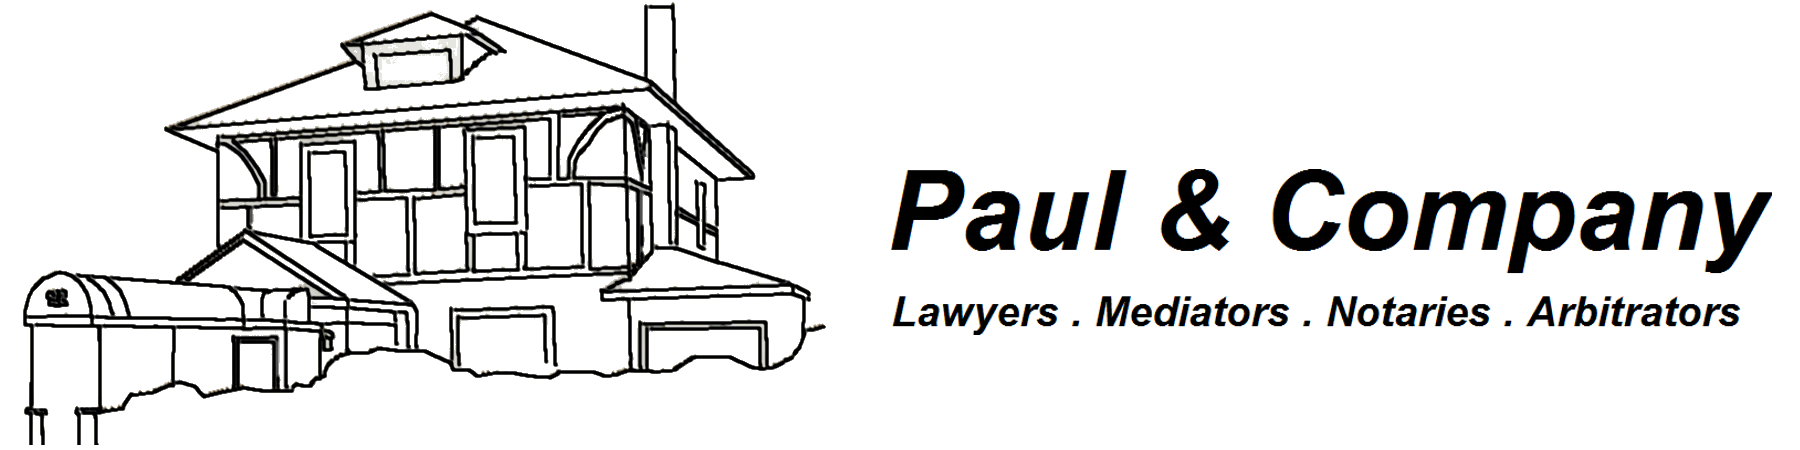 Kamloops Law - Paul & Company